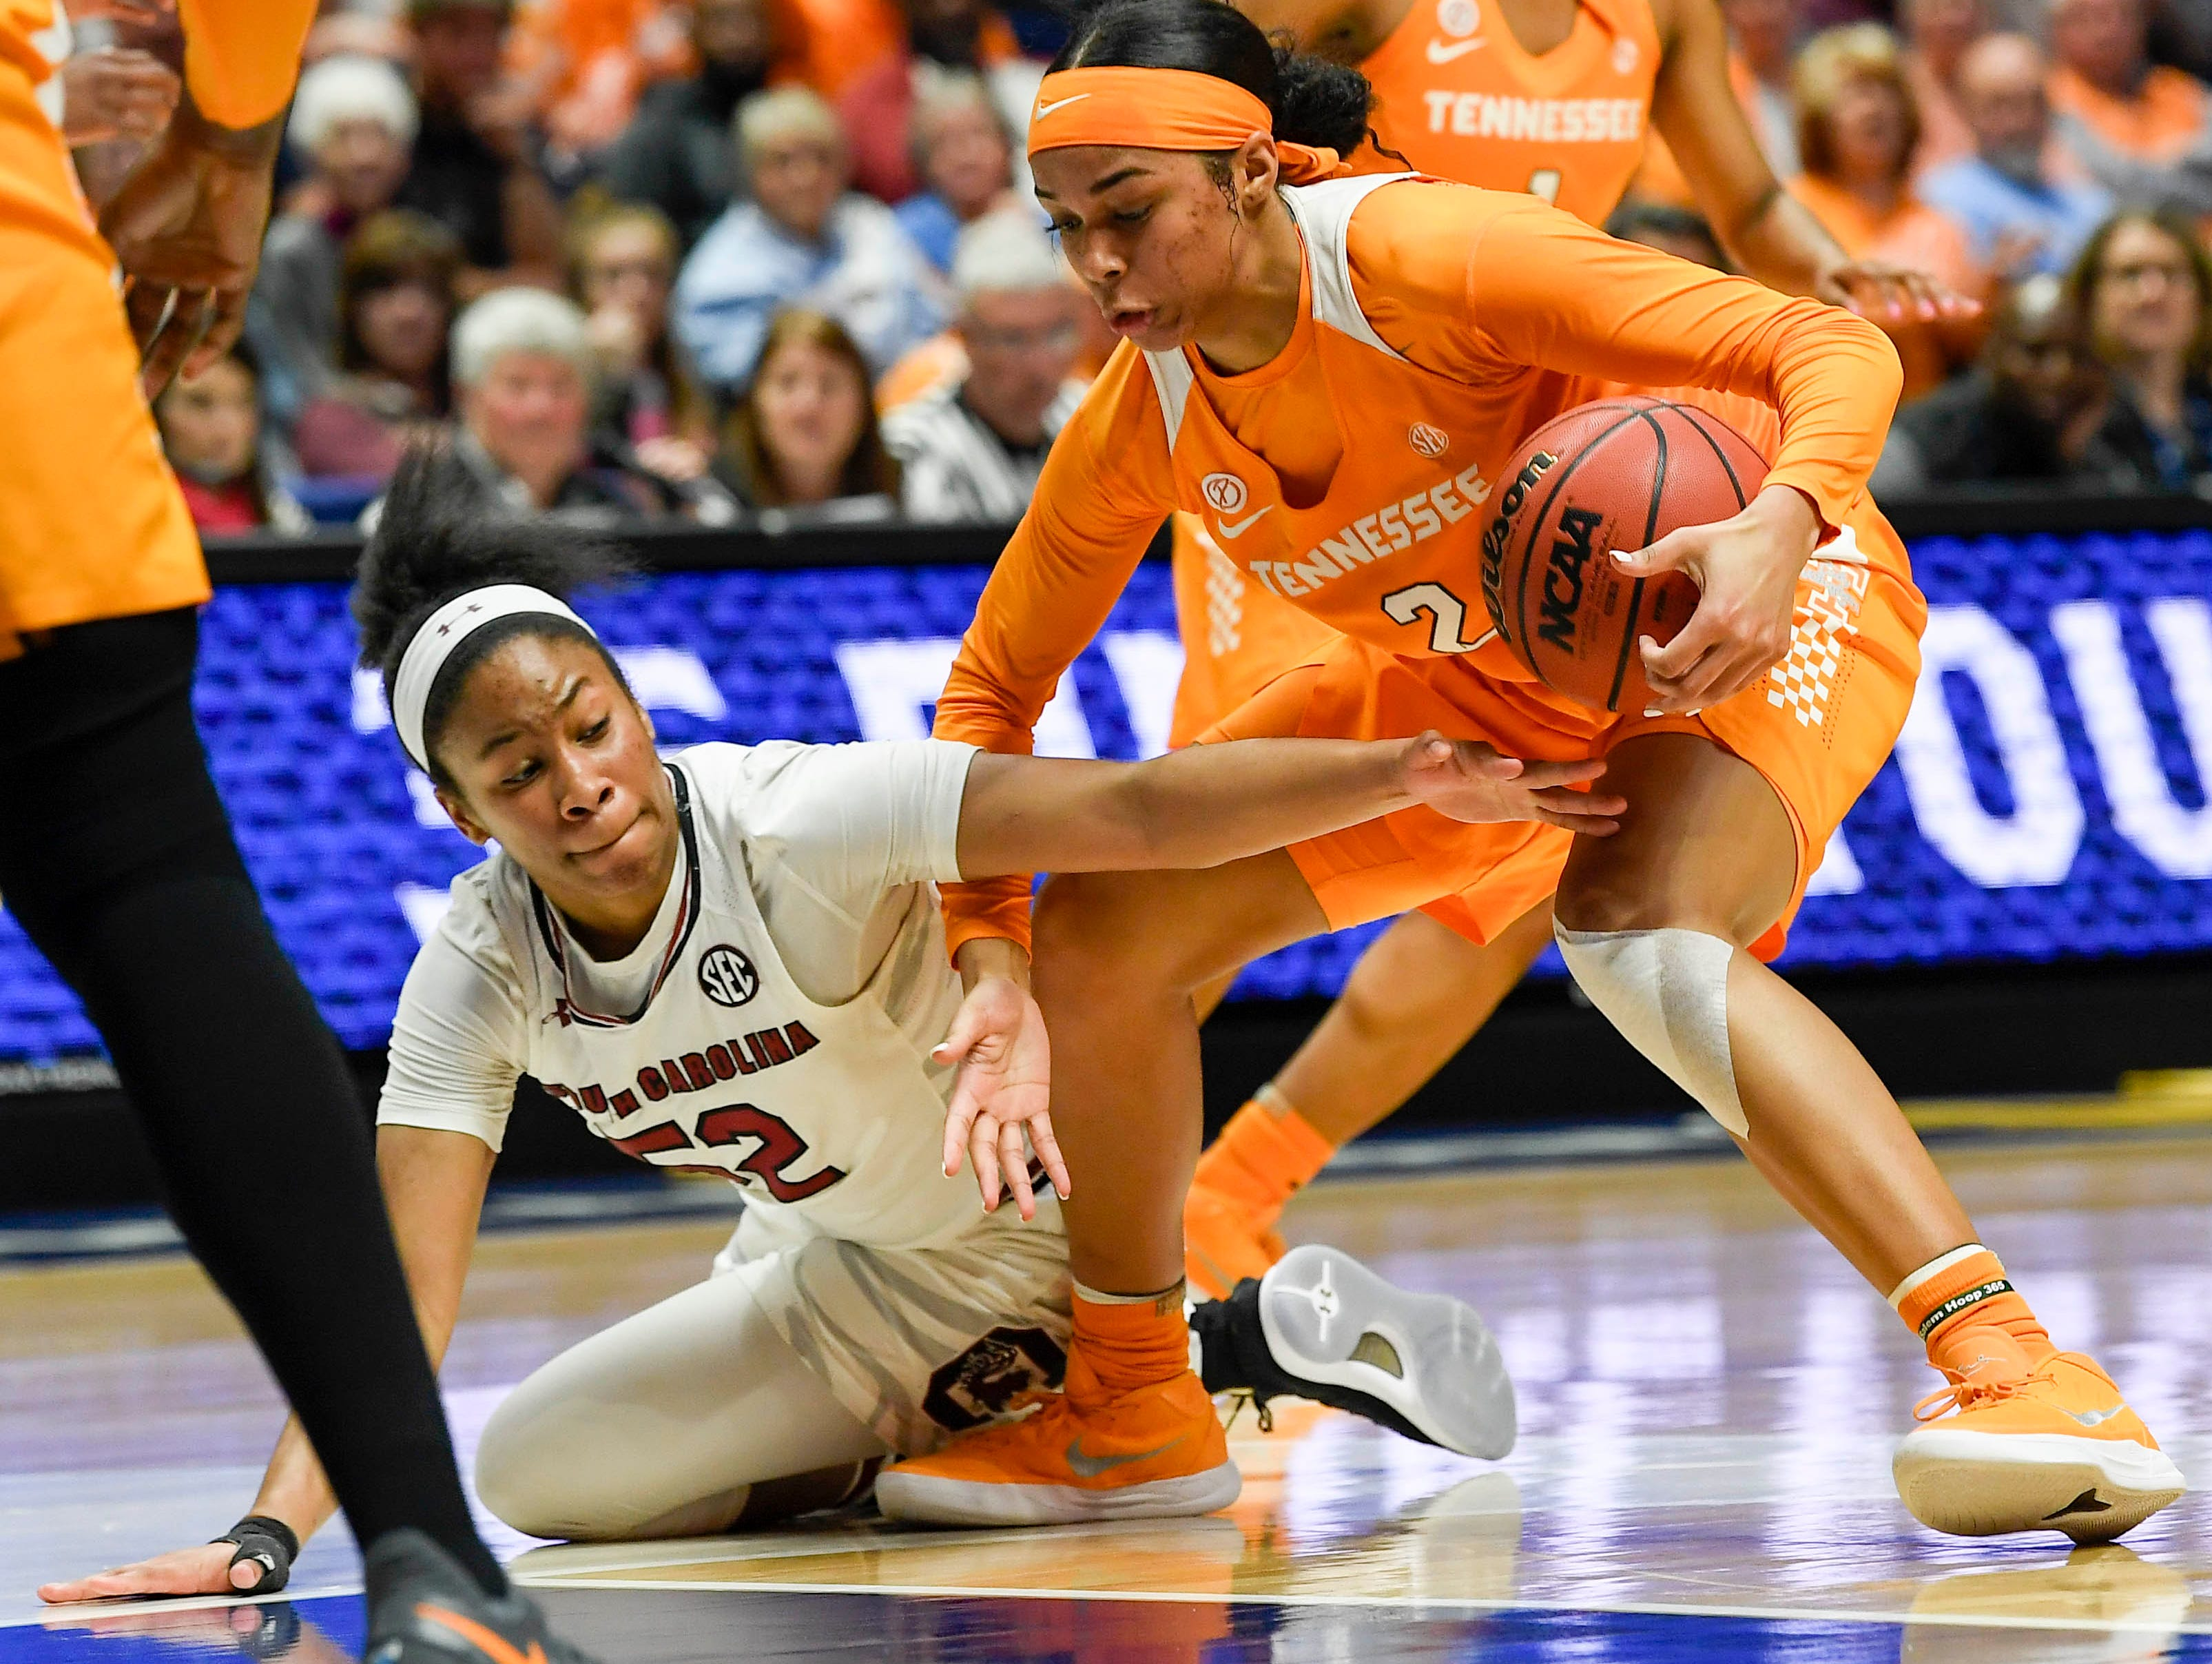 South Carolina Gamecocks guard Tyasha Harris (52) tries to knock the ball out of the hands of Tennessee Lady Volunteers guard Evina Westbrook (2) during round 3 of the SEC Women's Basketball Tournament at the Bridgestone Arena in Nashville, Tenn., Friday, March 2, 2018.